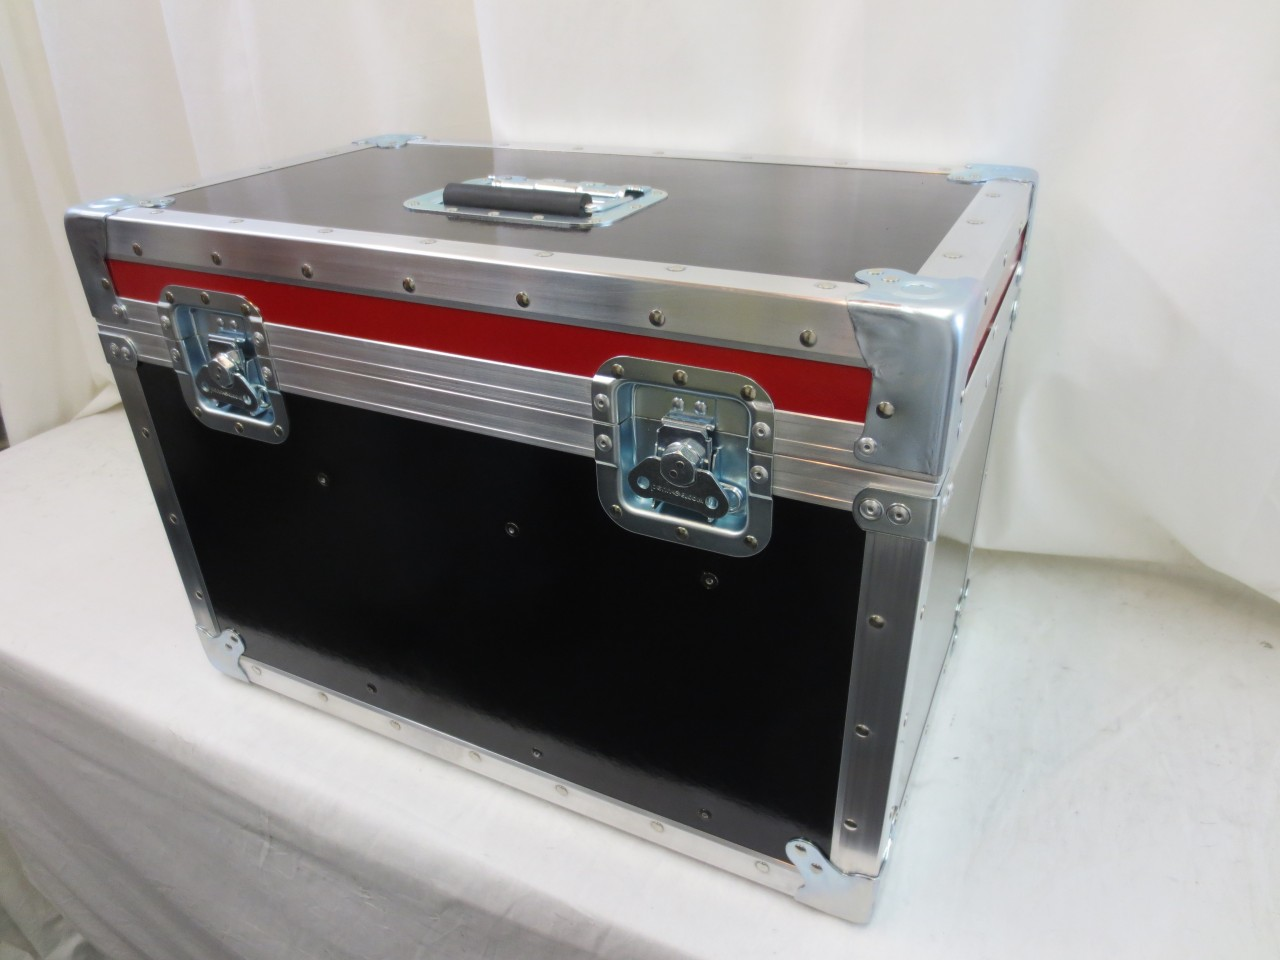 Sony PVM 1741 Monitor Shipping Case